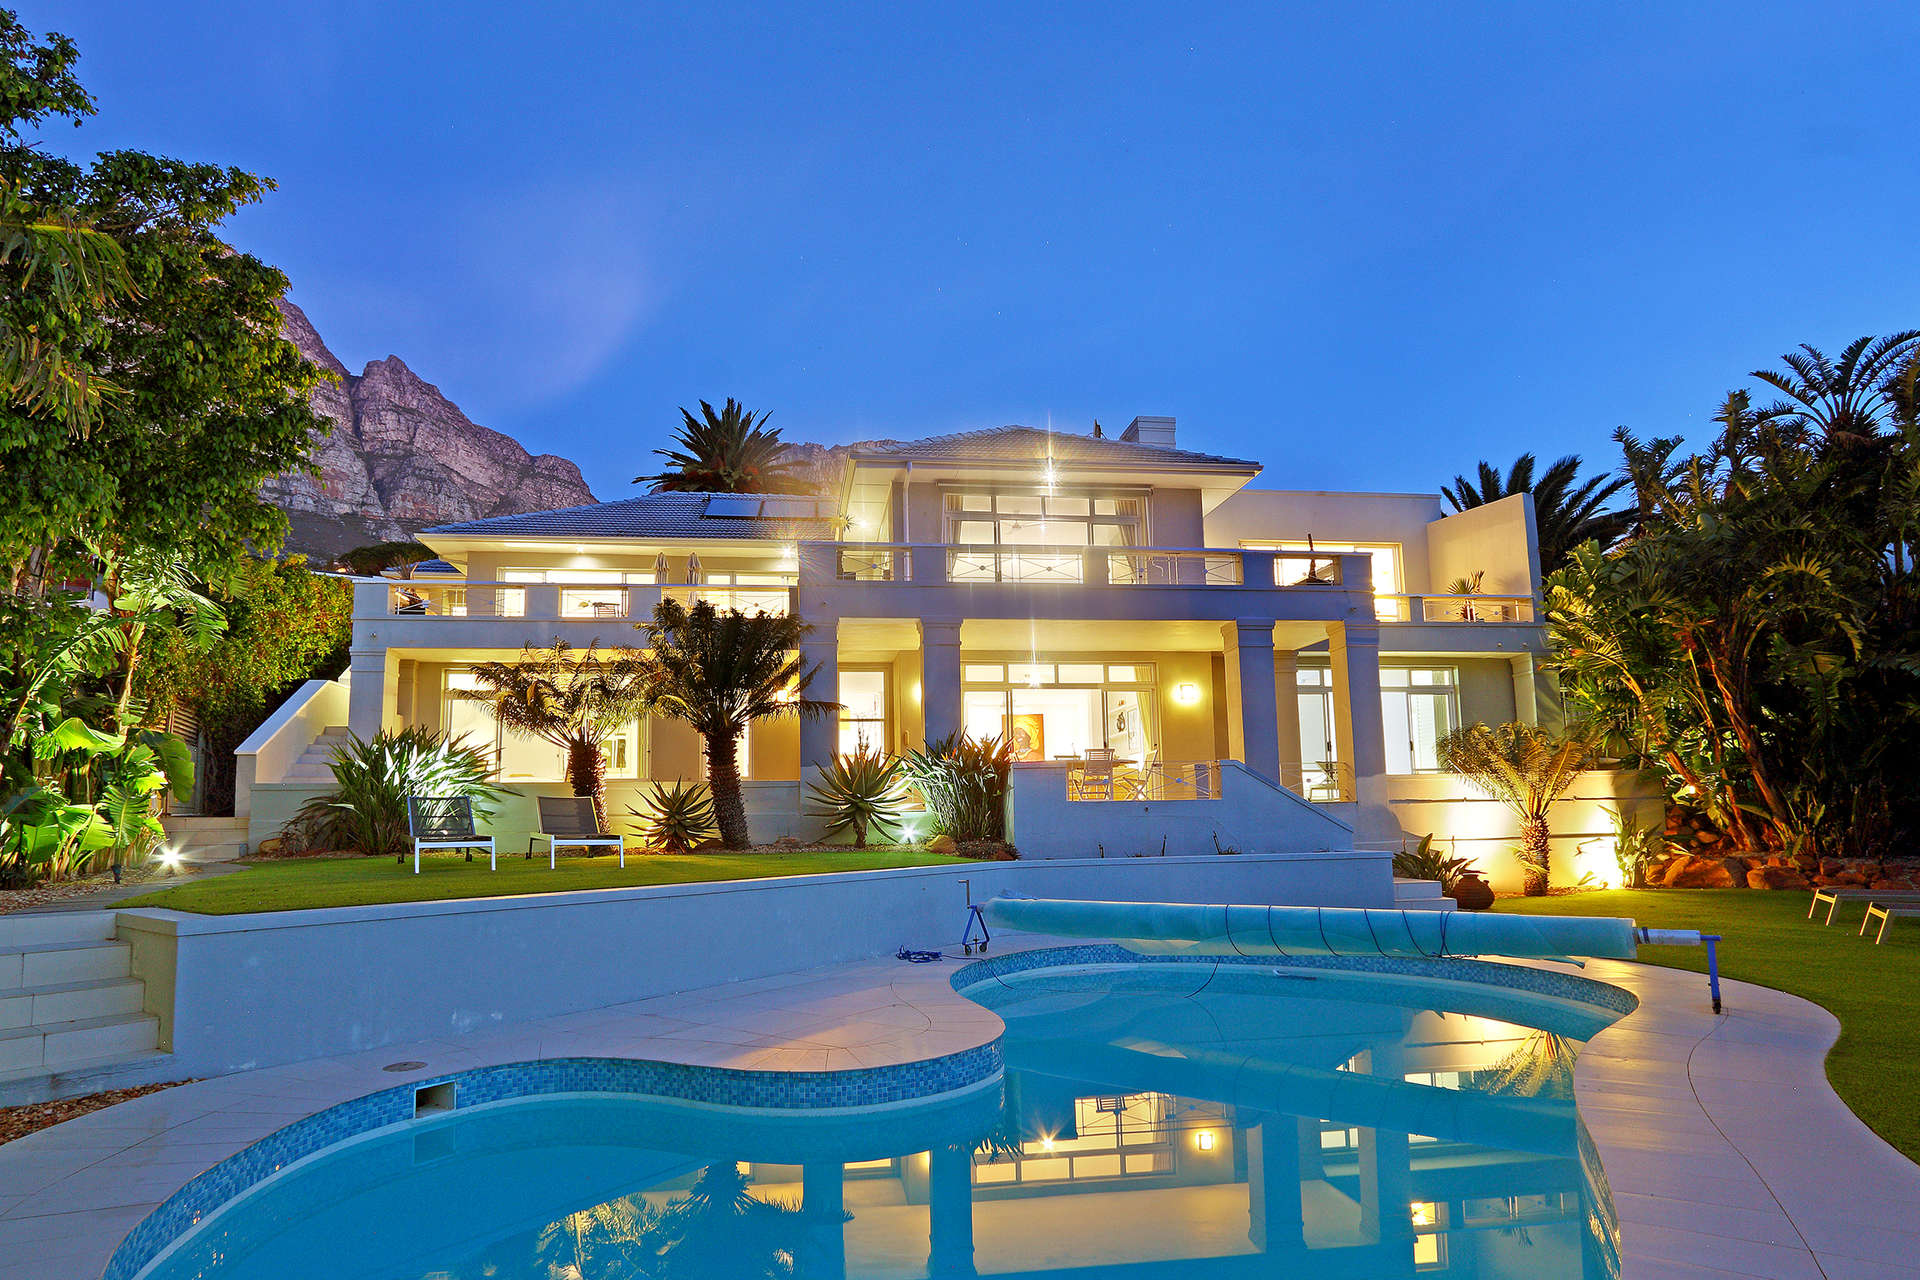 Luxury villa rentals africa - South africa - Capetown - Camps bay ct - Msangasanga - Image 1/20